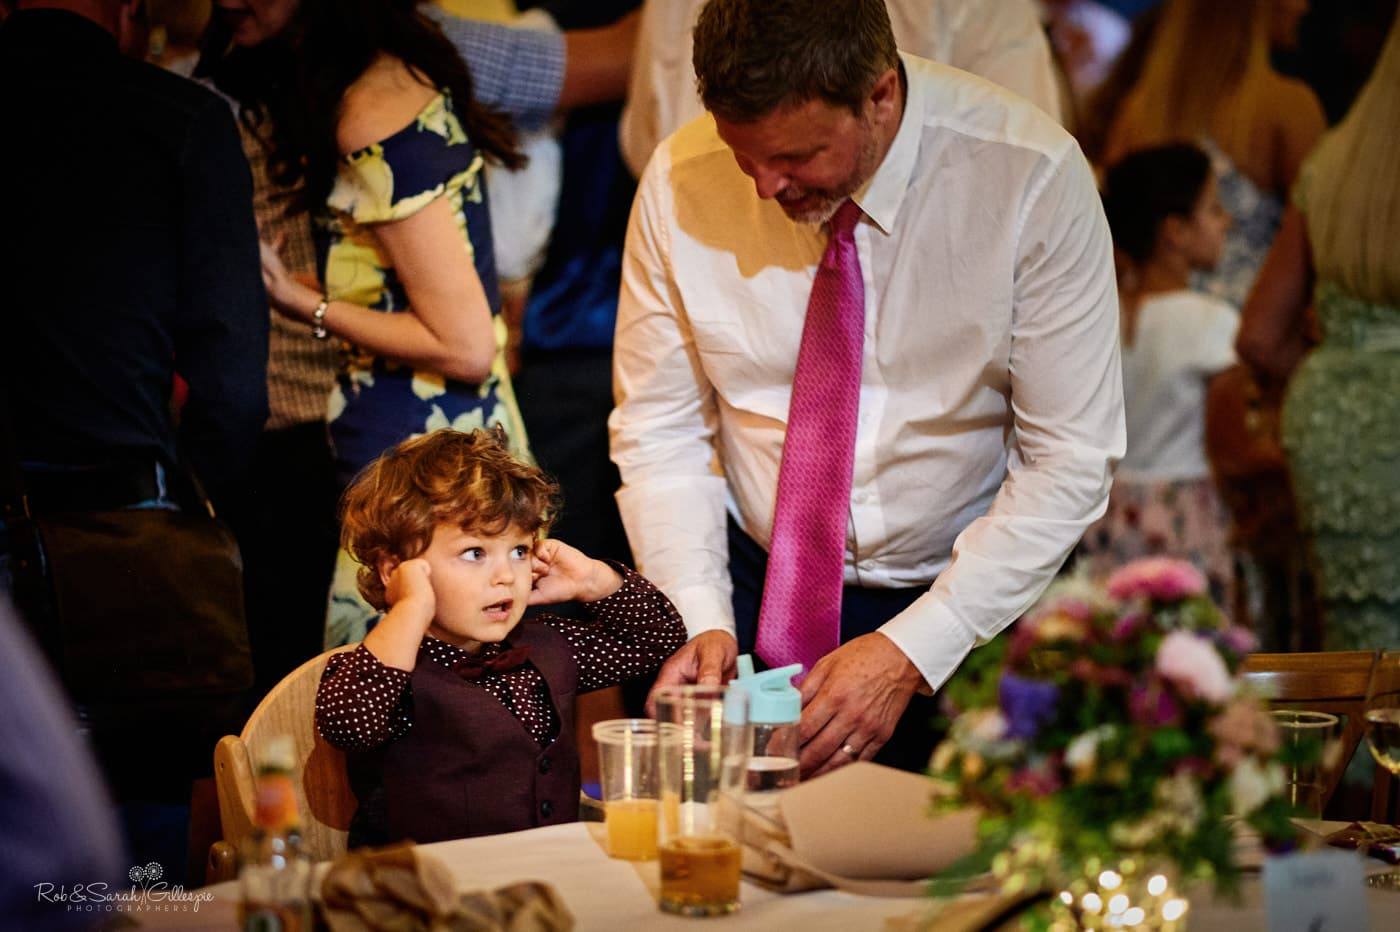 Young boy puts fingers in ears during evening wedding reception